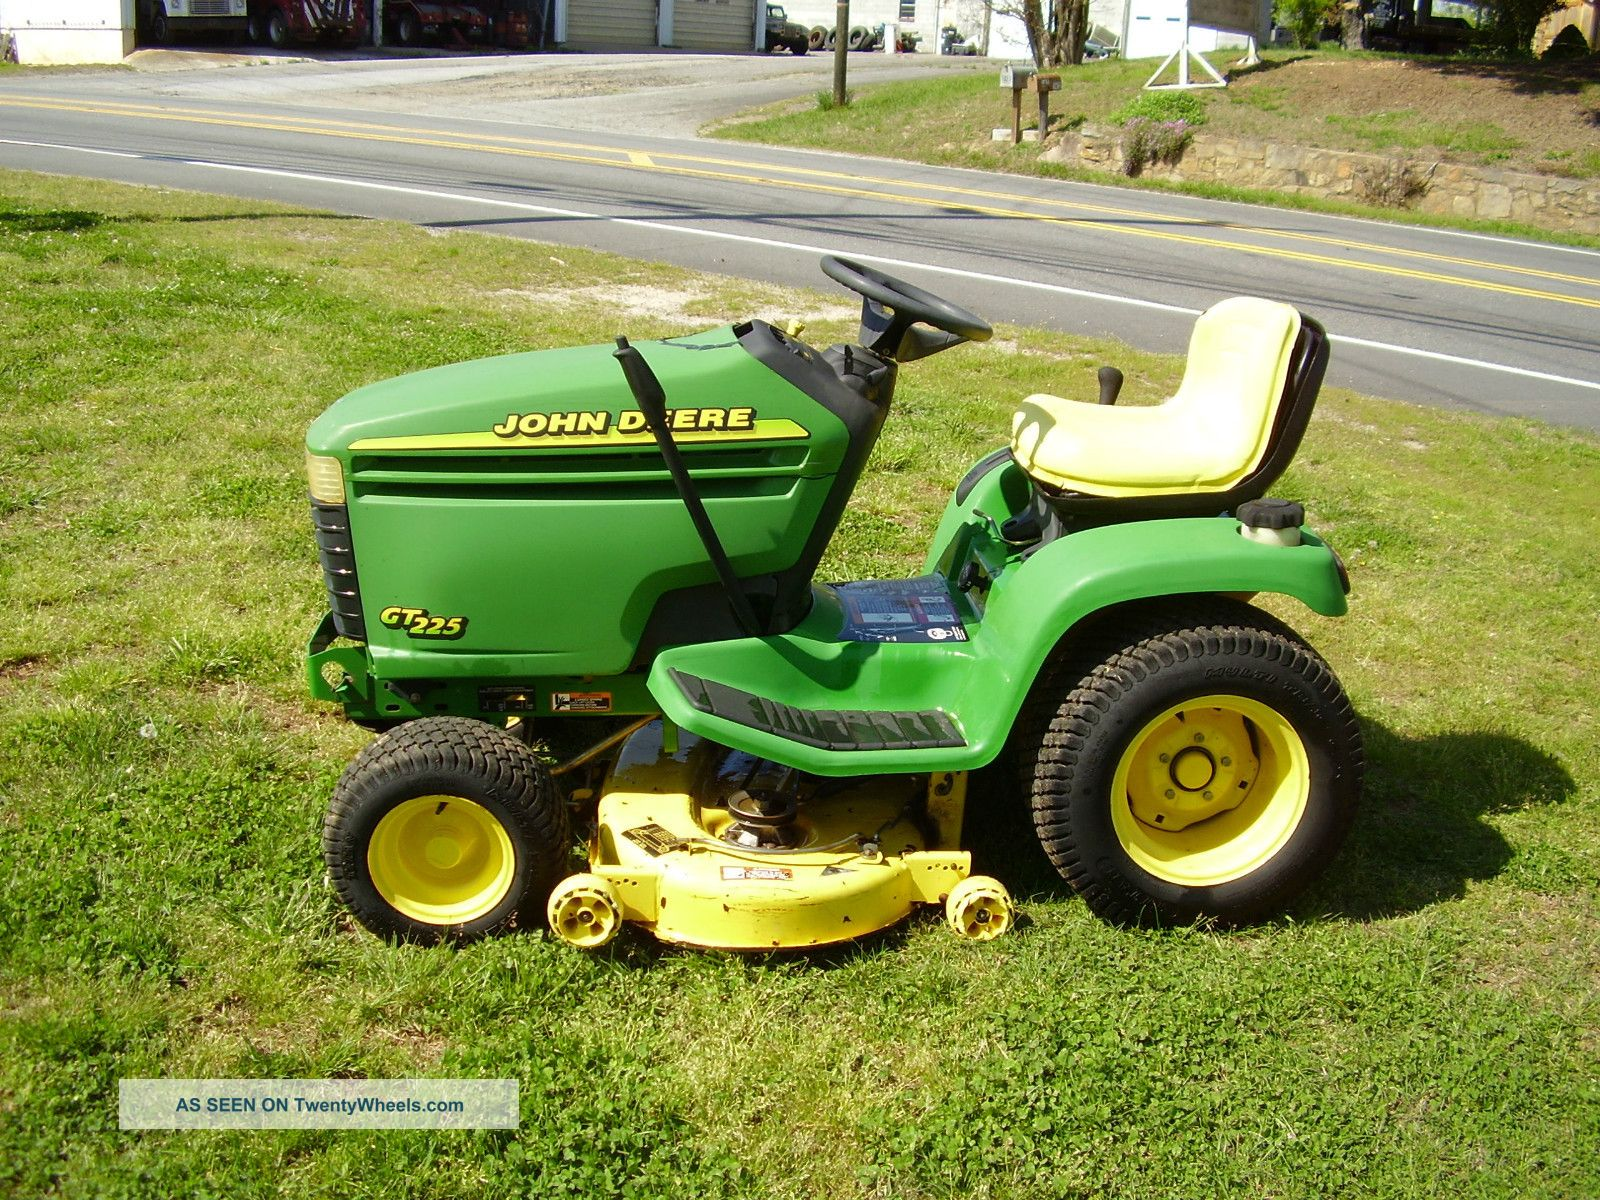 John Deere Gt 225 Riding Mower Hydrostatic Tractors photo